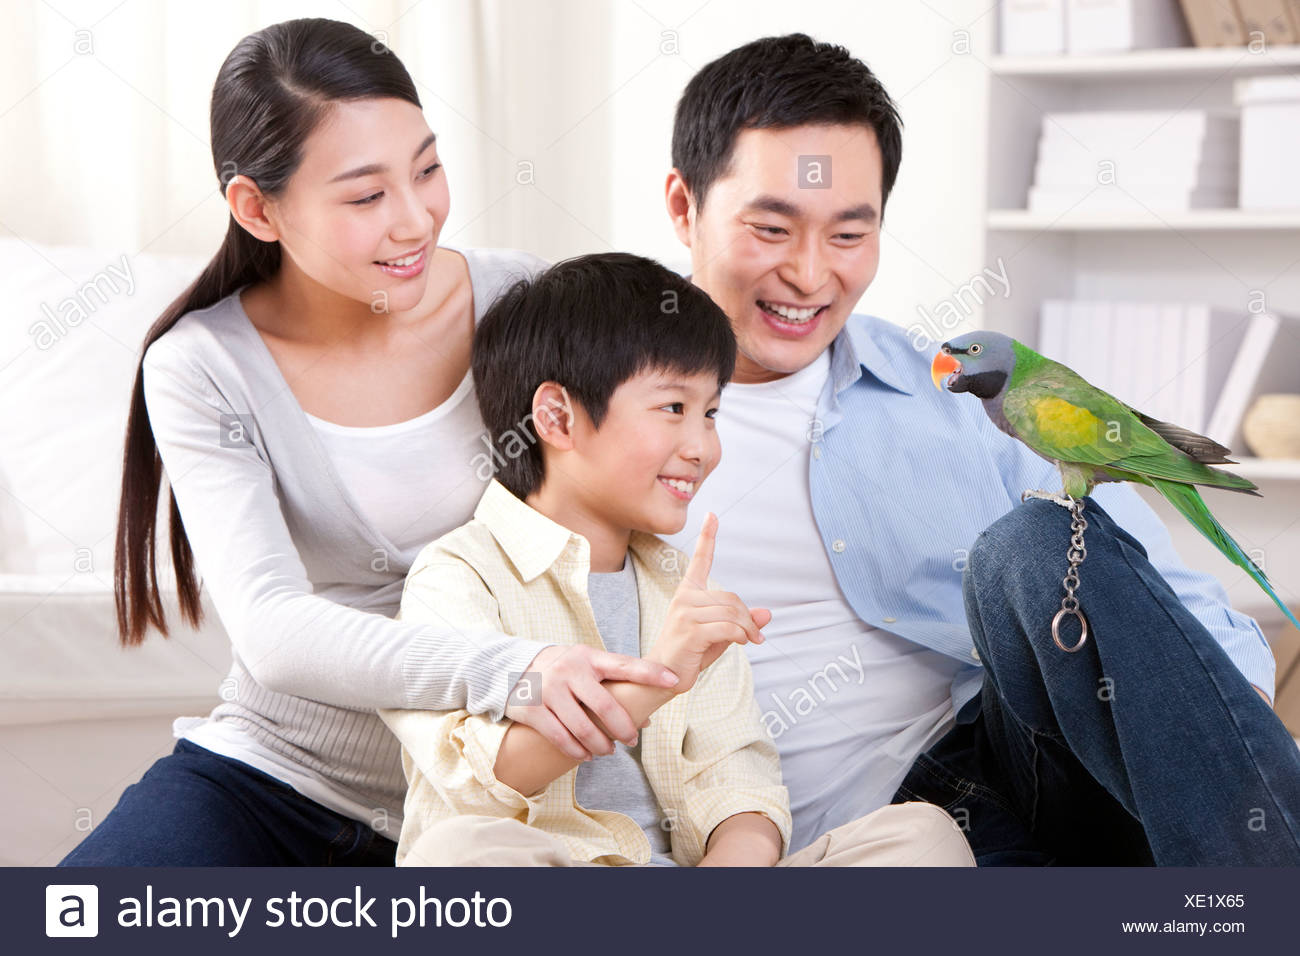 Family playing with a pet parrot - Stock Image